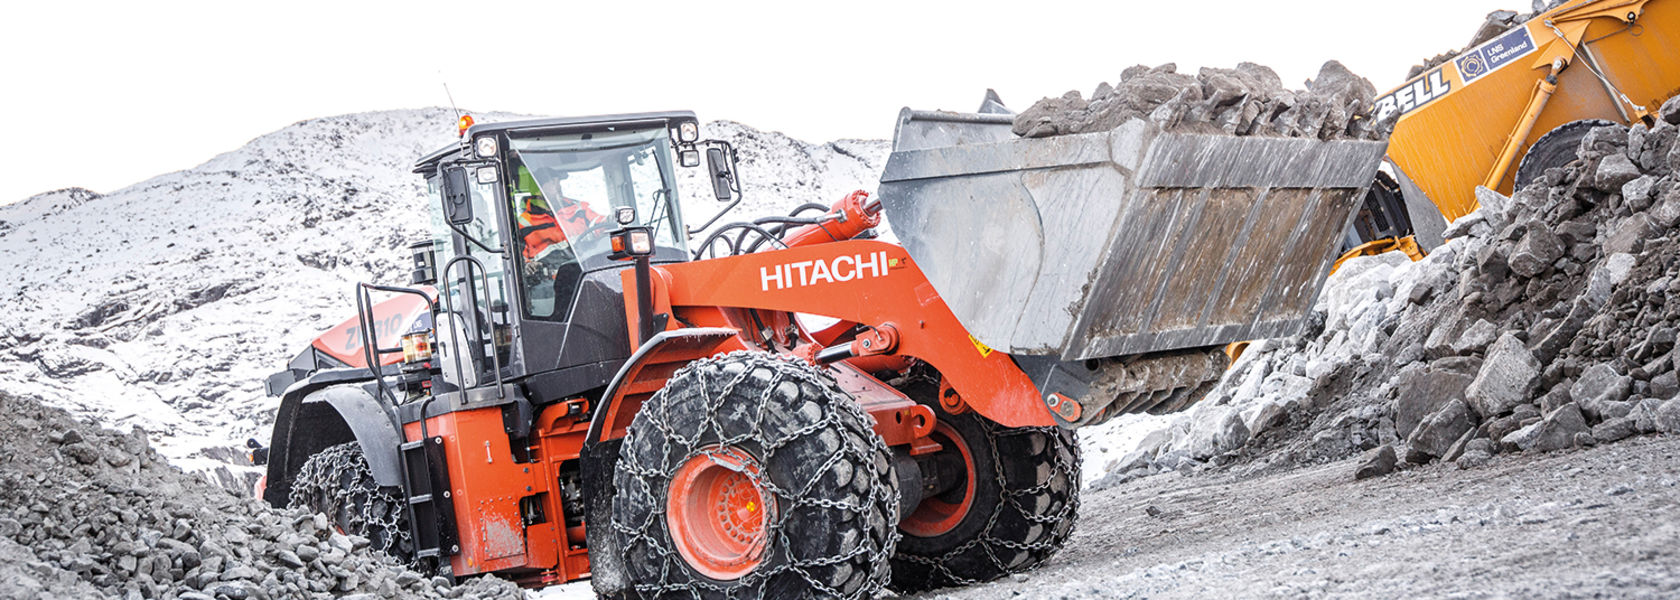 Hitachi fleet supports Aappaluttoq project